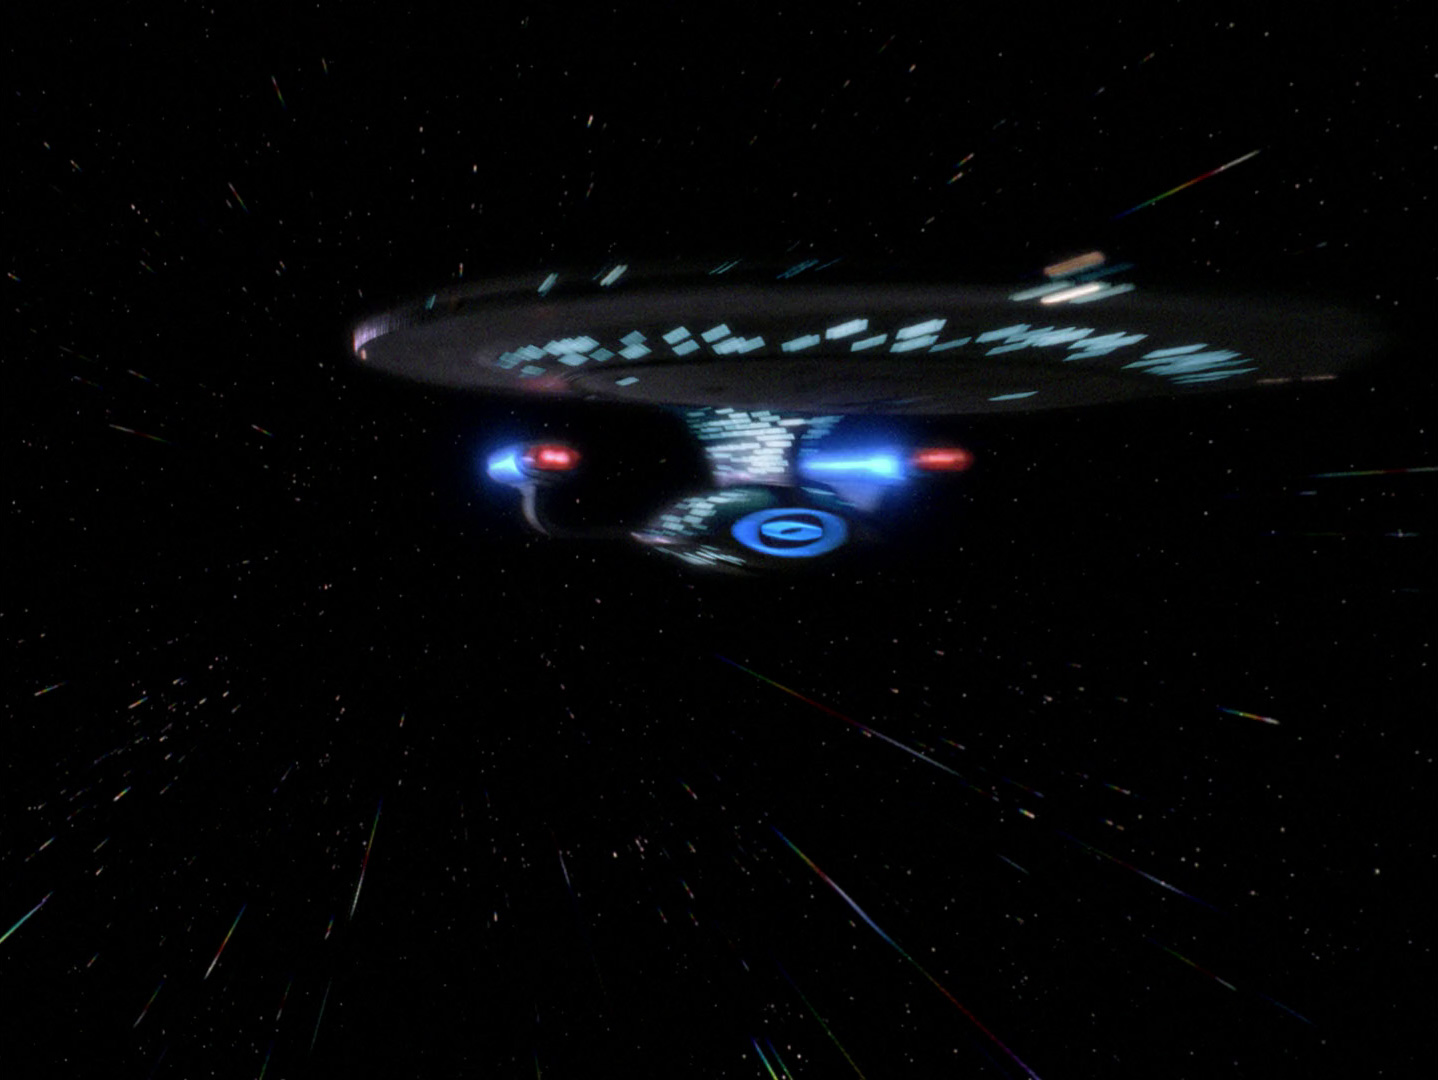 Star Trek: The Next Generation - Angriffsziel Erde (The Best Of Both Worlds, 2) Blu-ray Screencap © CBS/Paramount